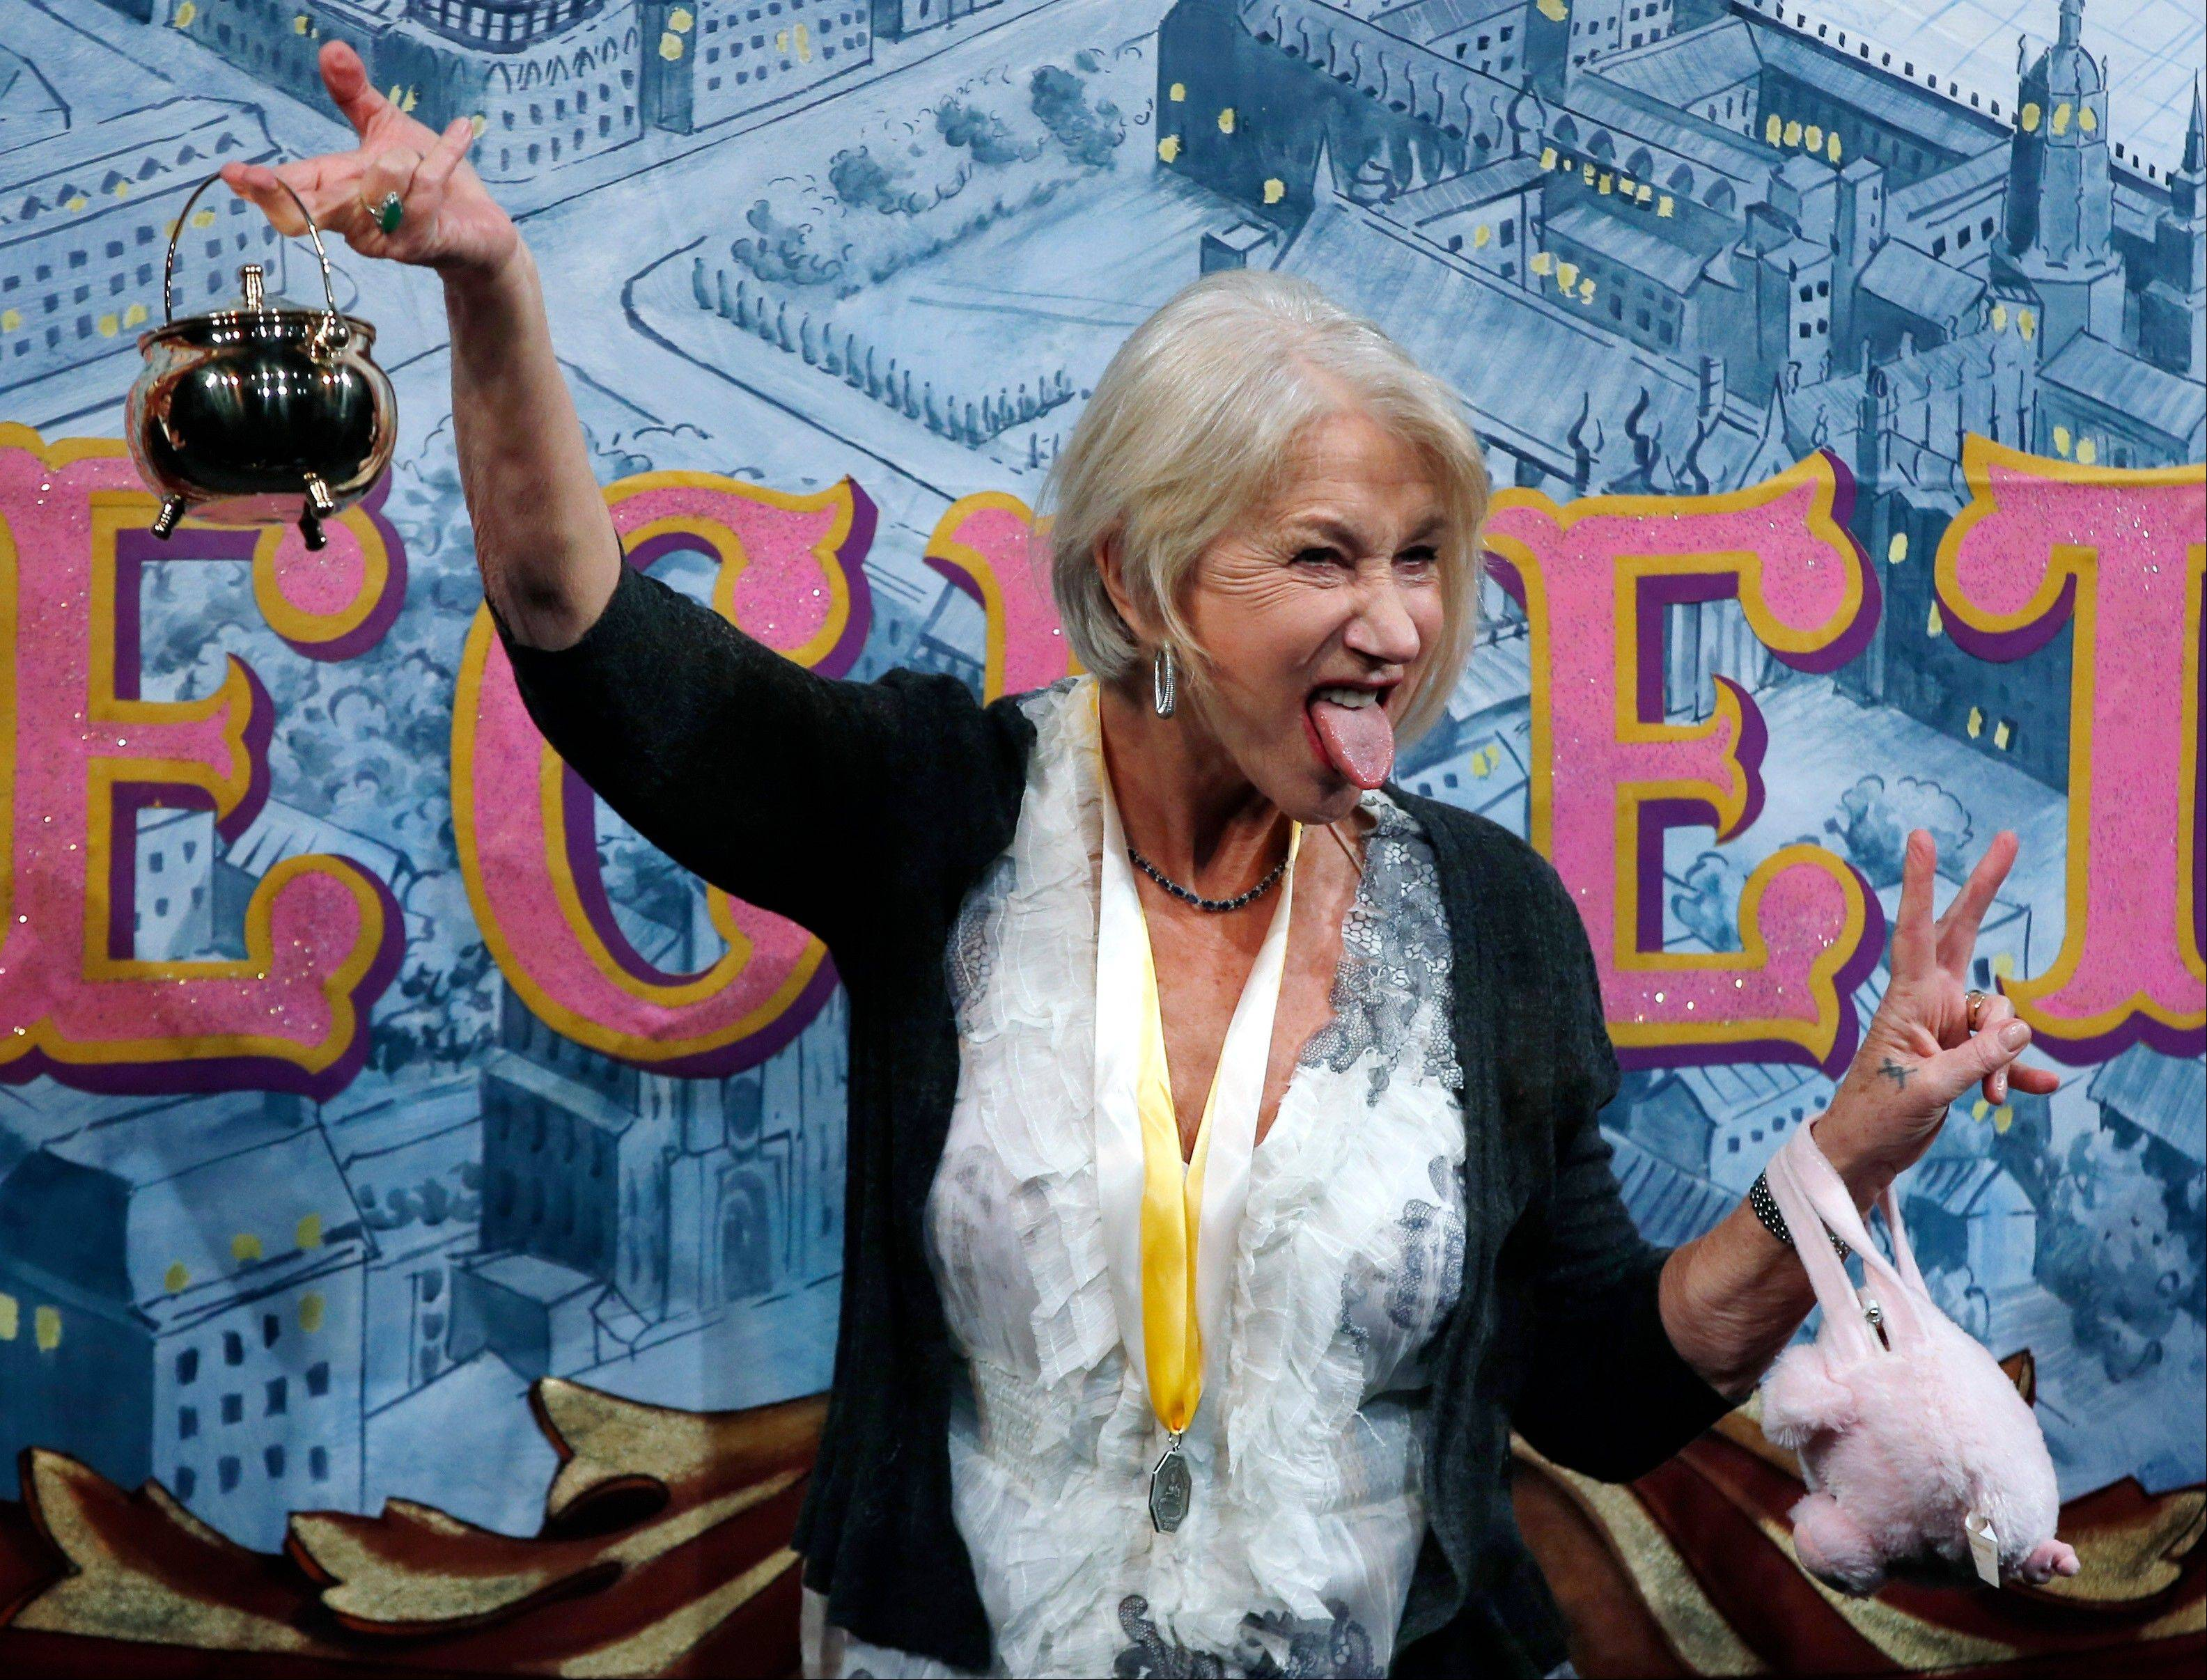 Actress Helen Mirren holds the Hasty Pudding Pot aloft and sticks her tongue out during her roast as woman of the year by Harvard University's Hasty Pudding Theatricals in Cambridge, Mass., Thursday.